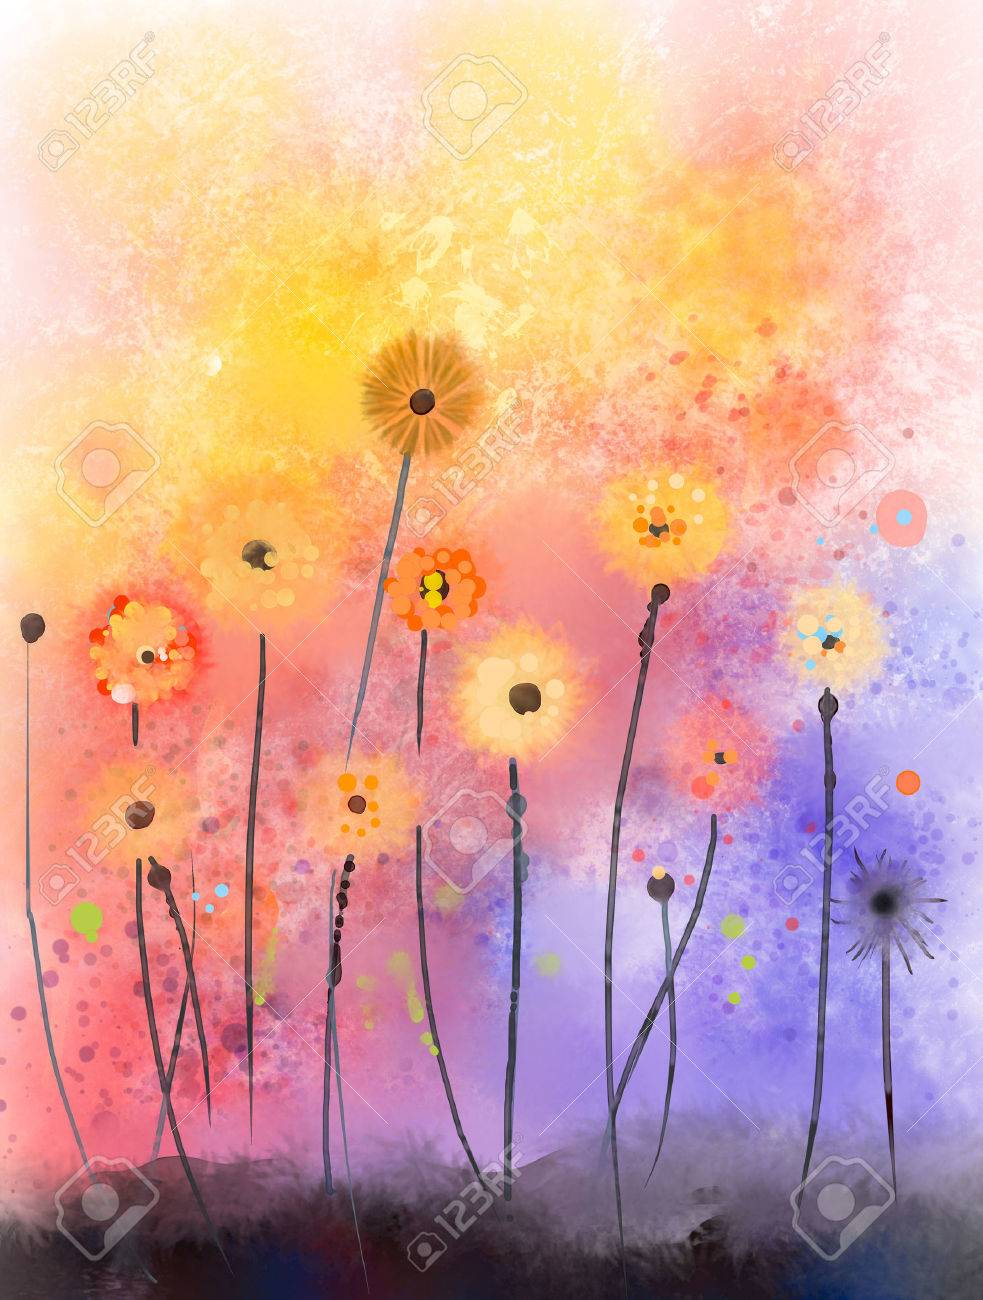 Abstract Floral Watercolor PaintingsRed Flowers In Soft Color 983x1300